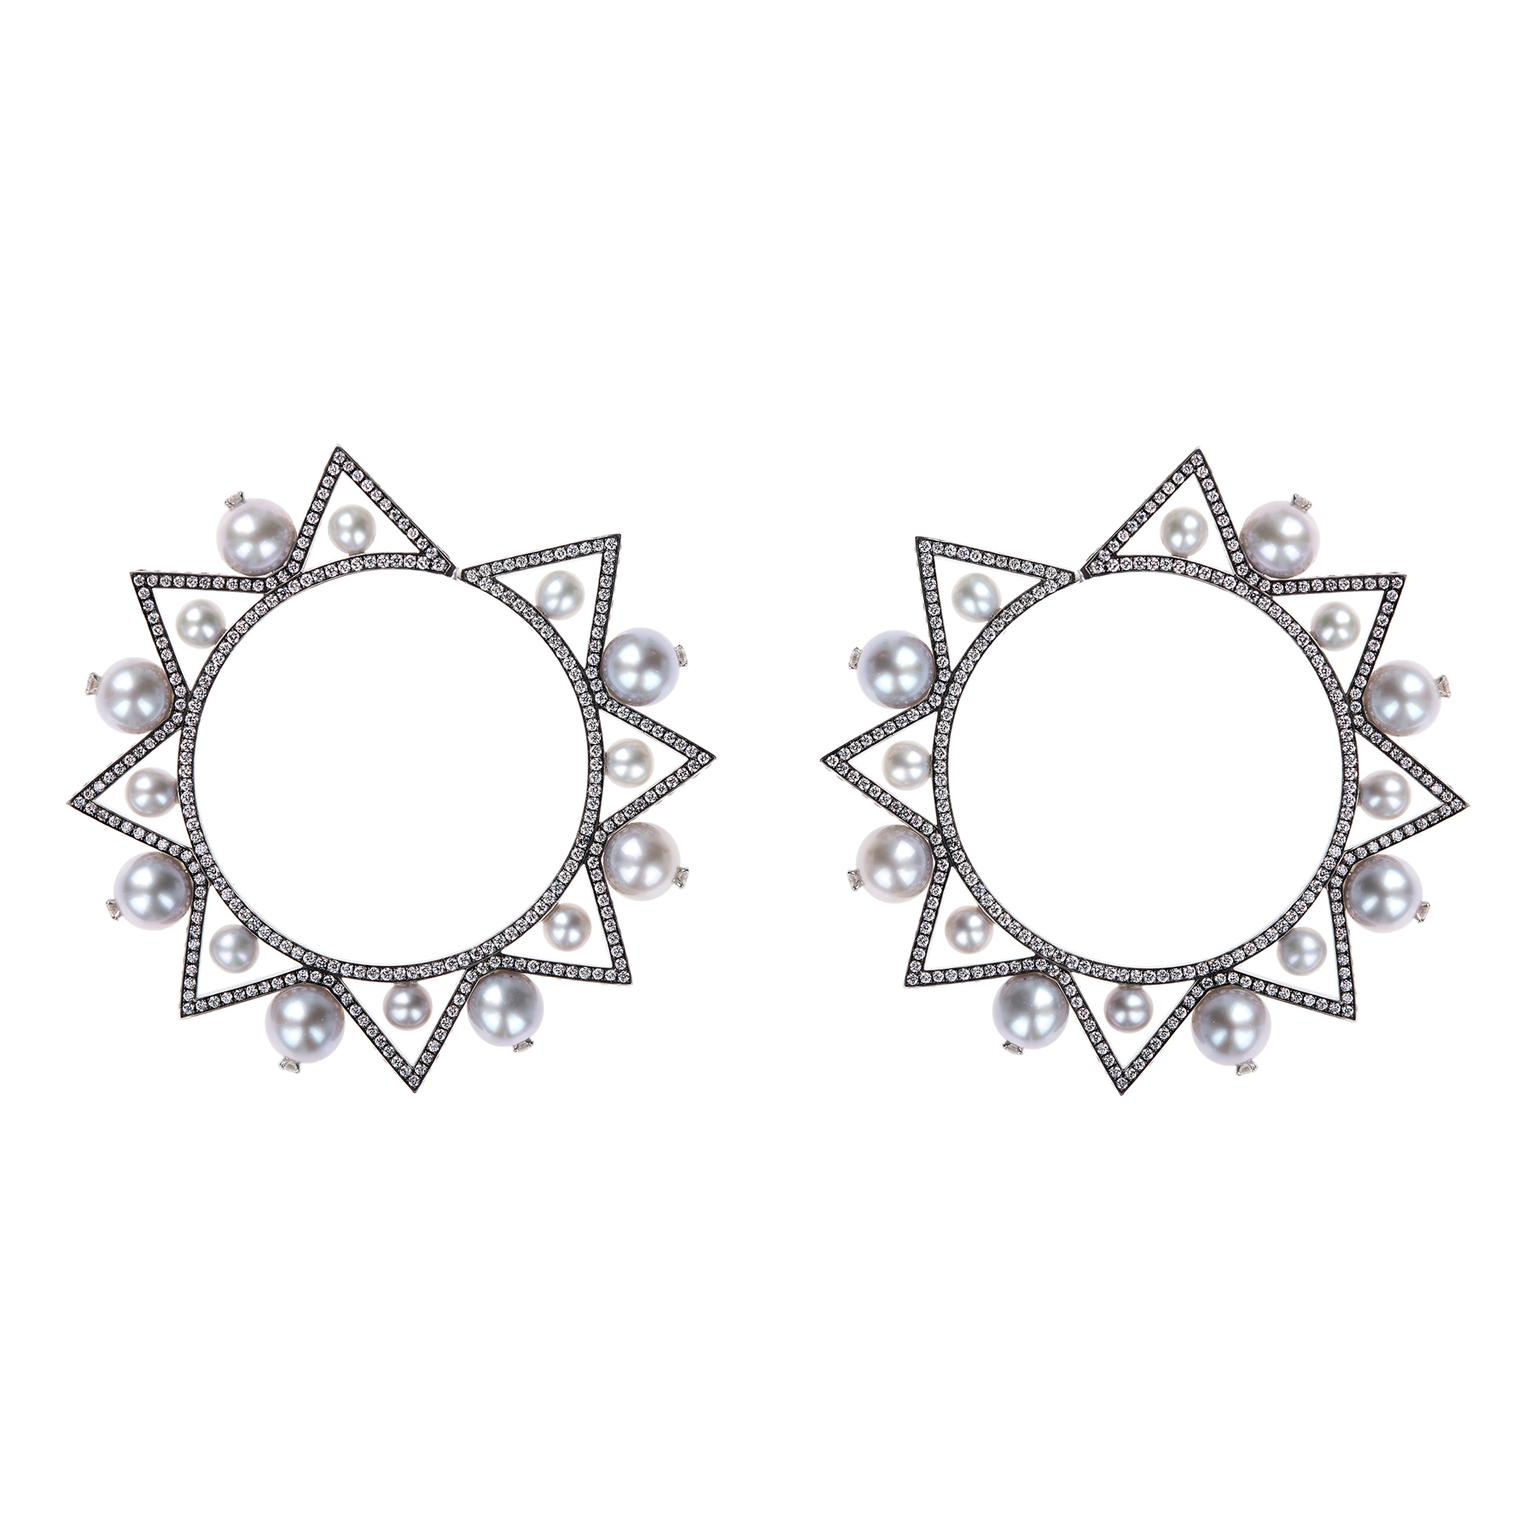 Nikos Koulis front-facing Lingerie hoop earrings